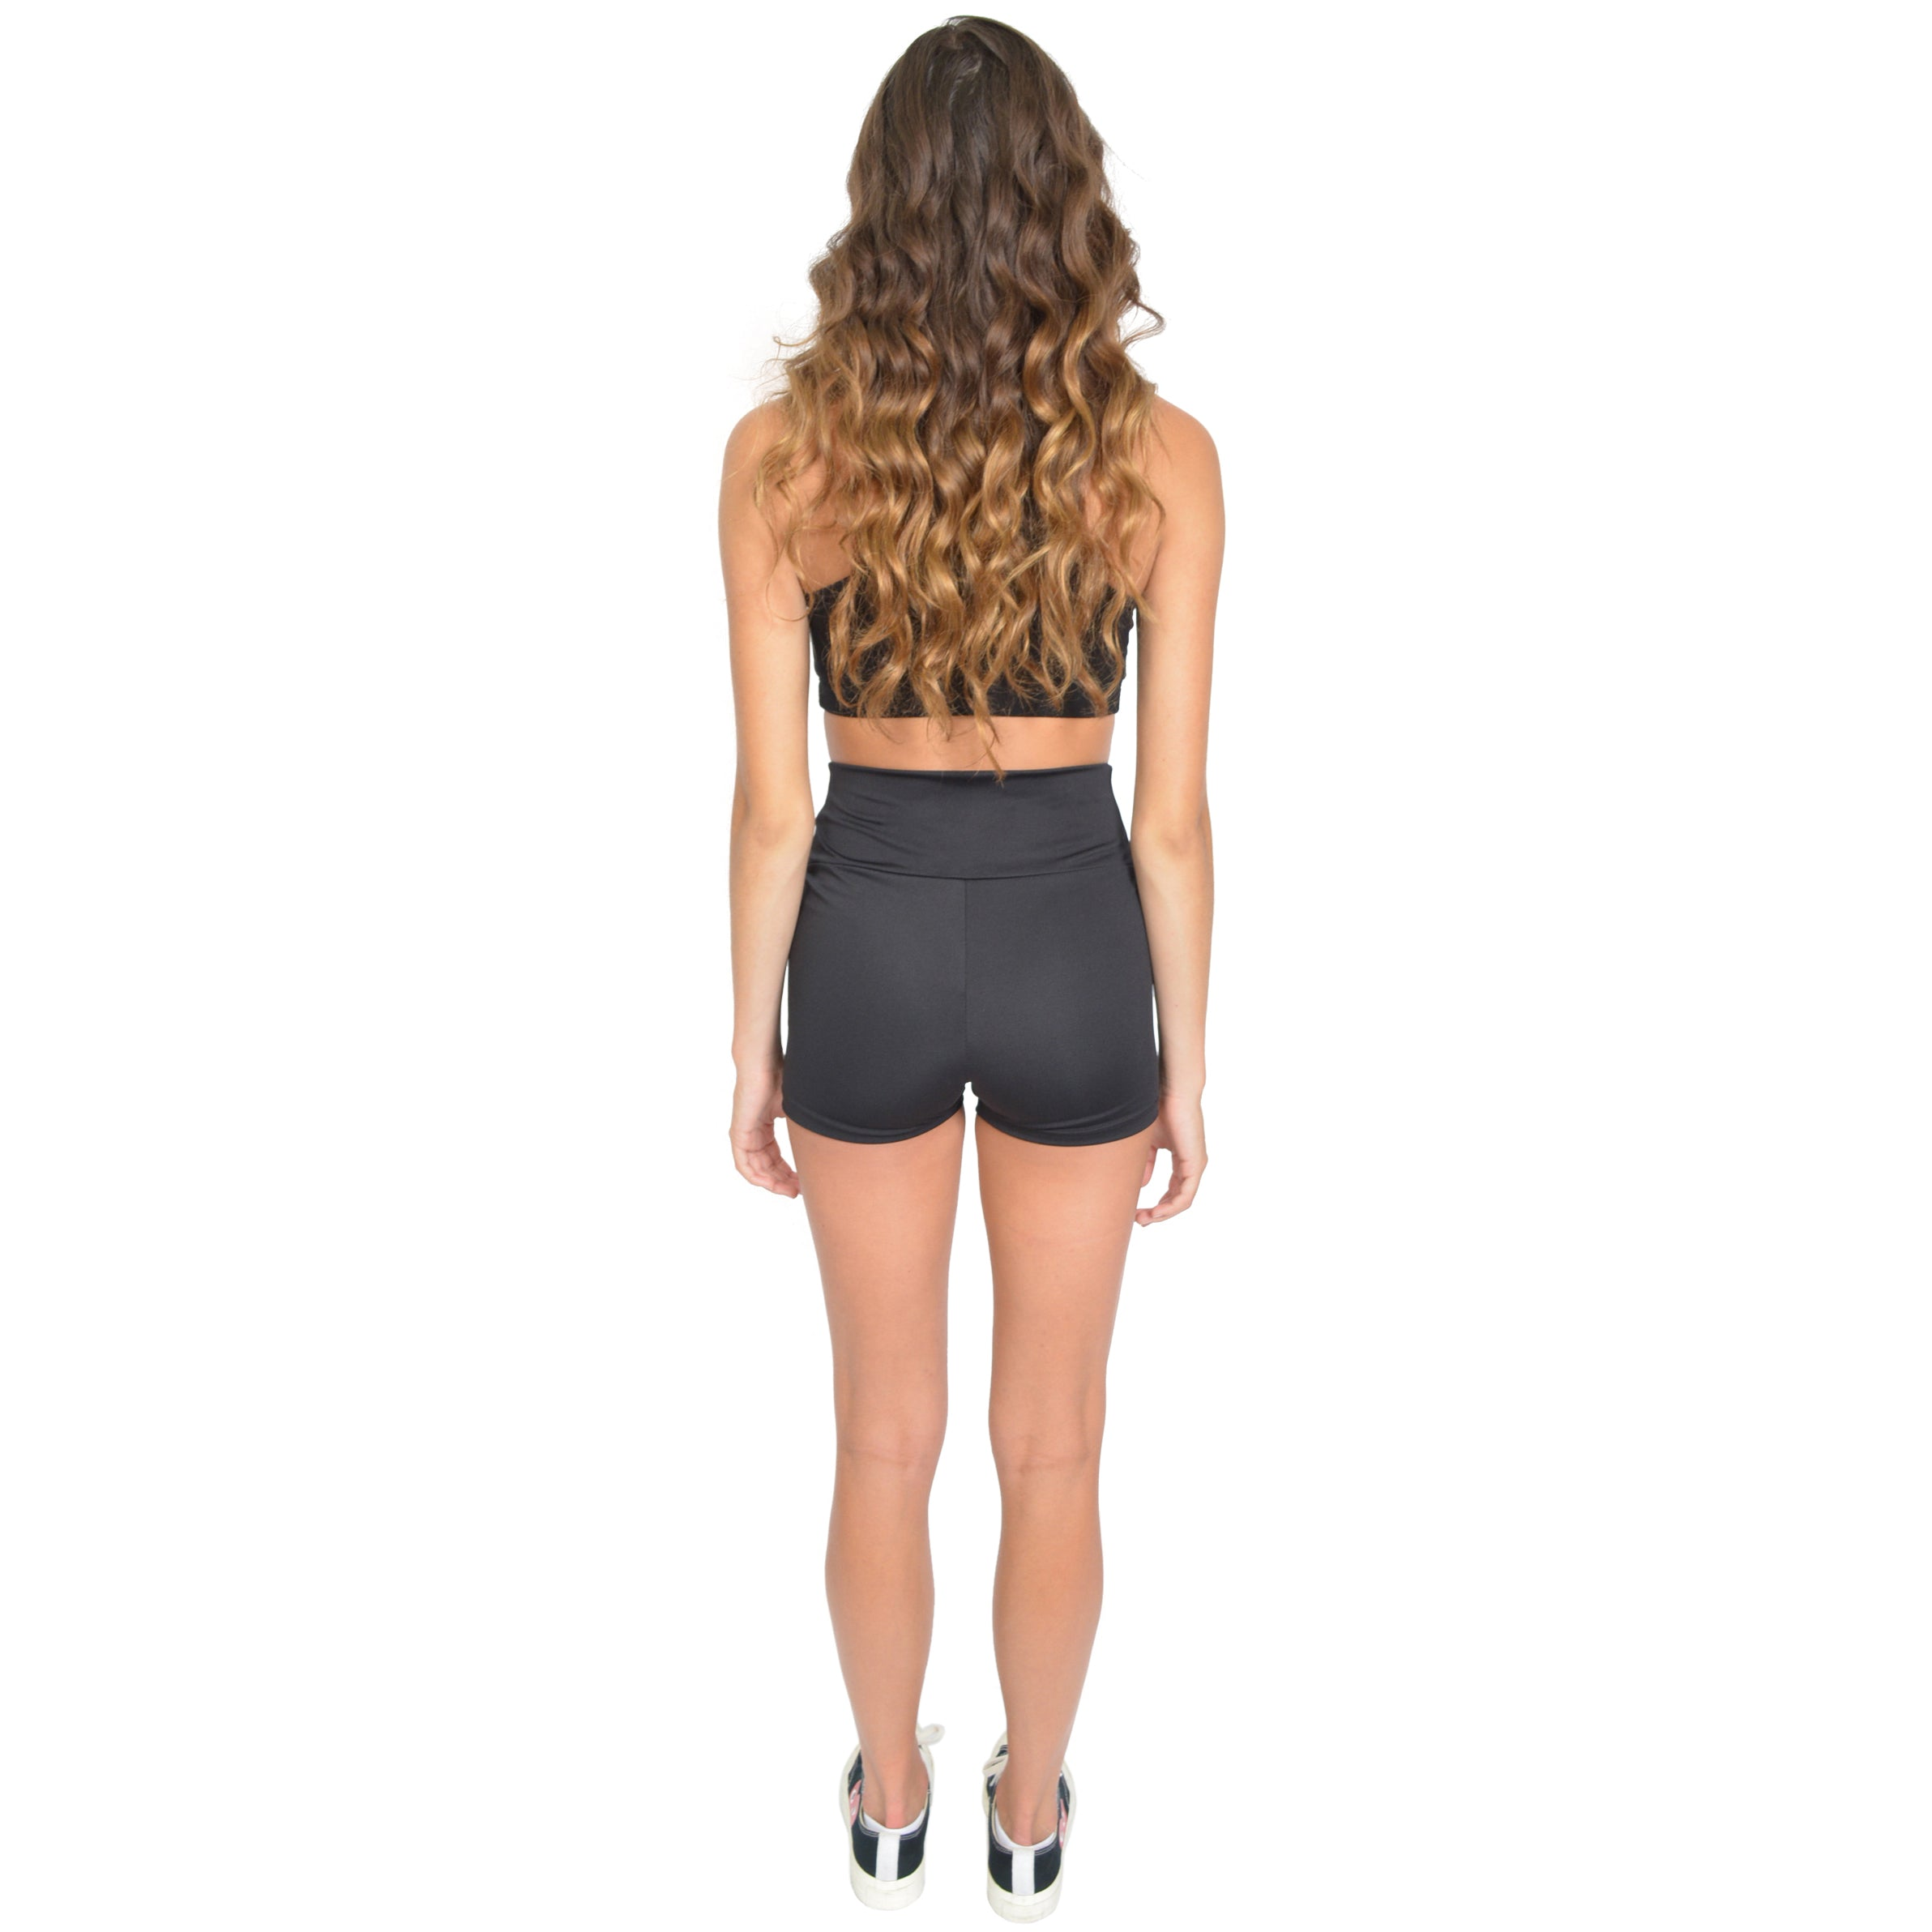 Women's Stretch Performance High Waist Athletic Booty Shorts